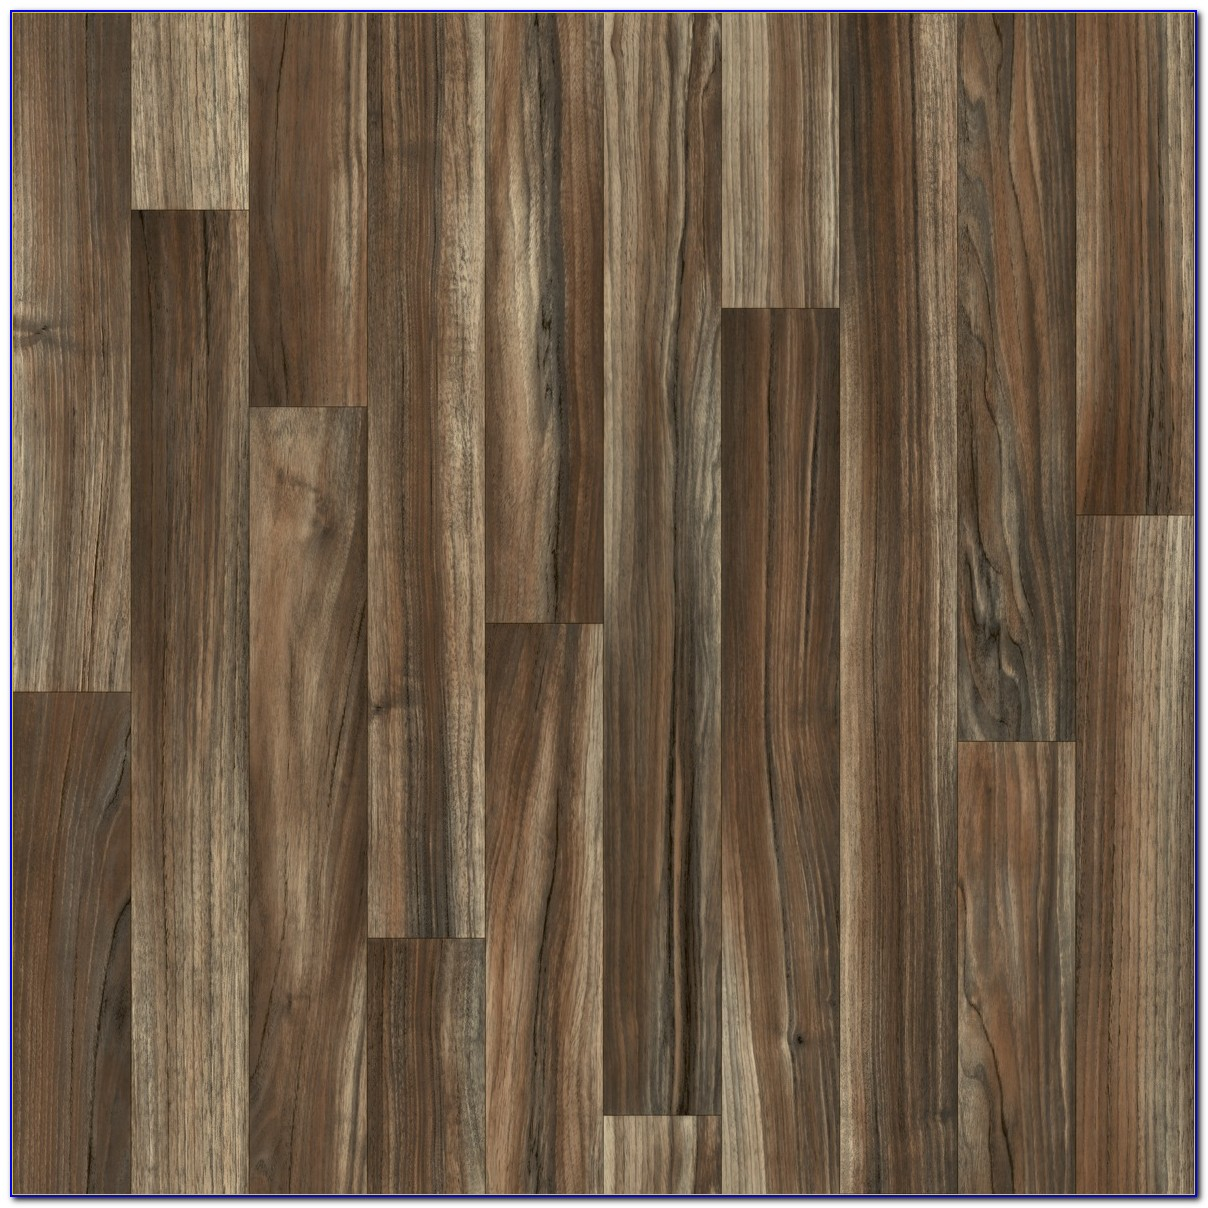 Tarkett Italian Walnut Laminate Flooring